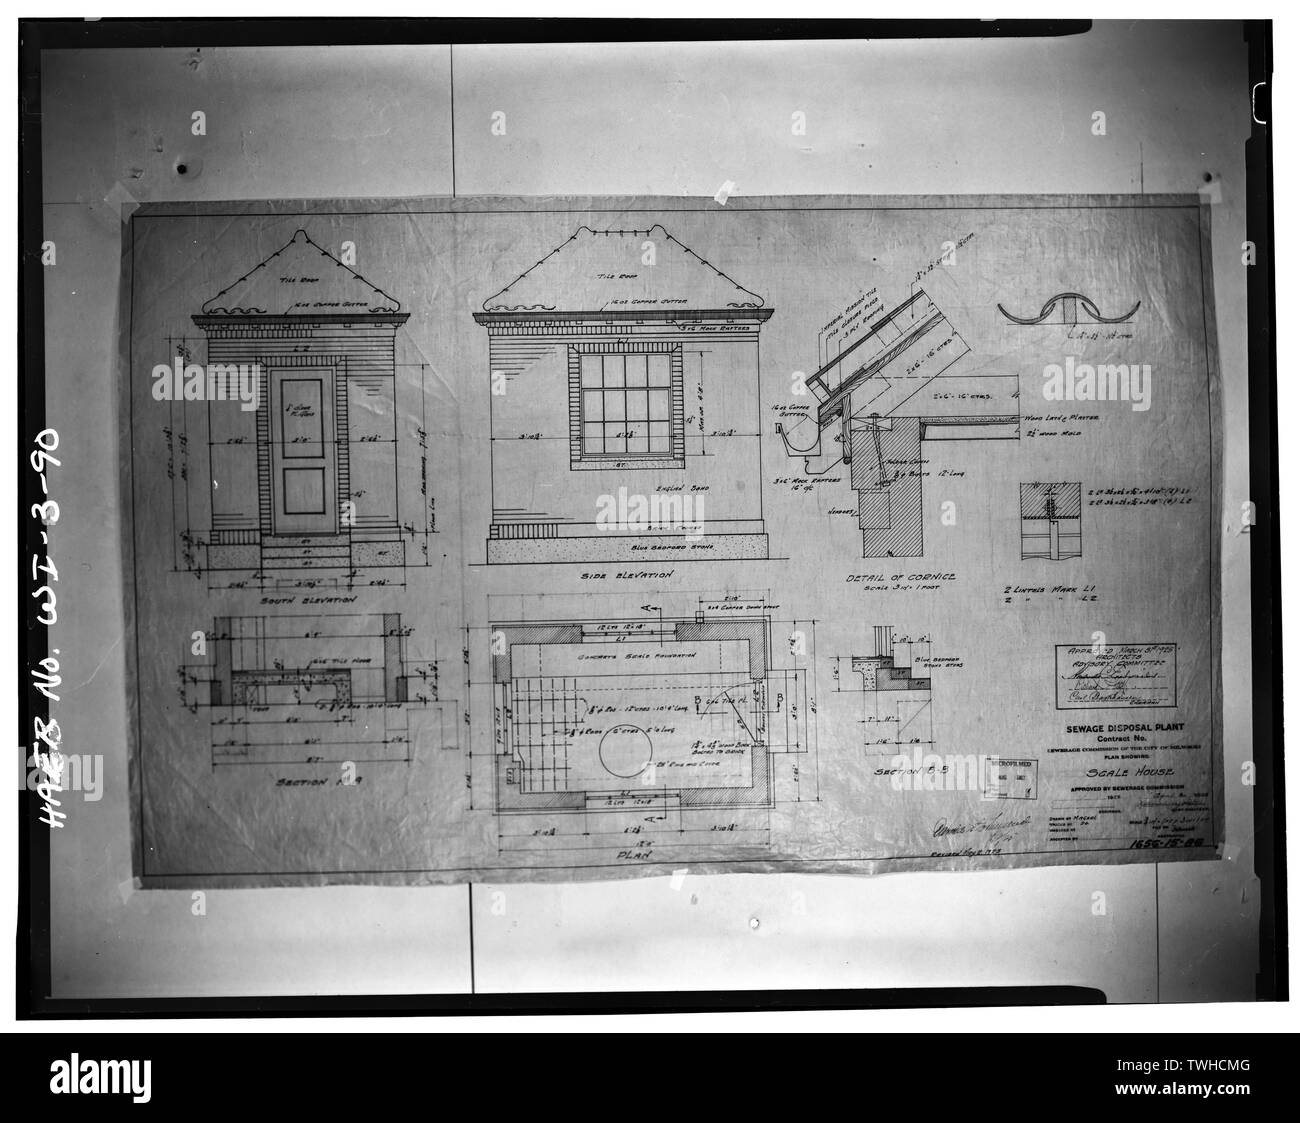 SCALE HOUSE, ELEVATIONS, SECTIONS, PLAN AND DETAILS